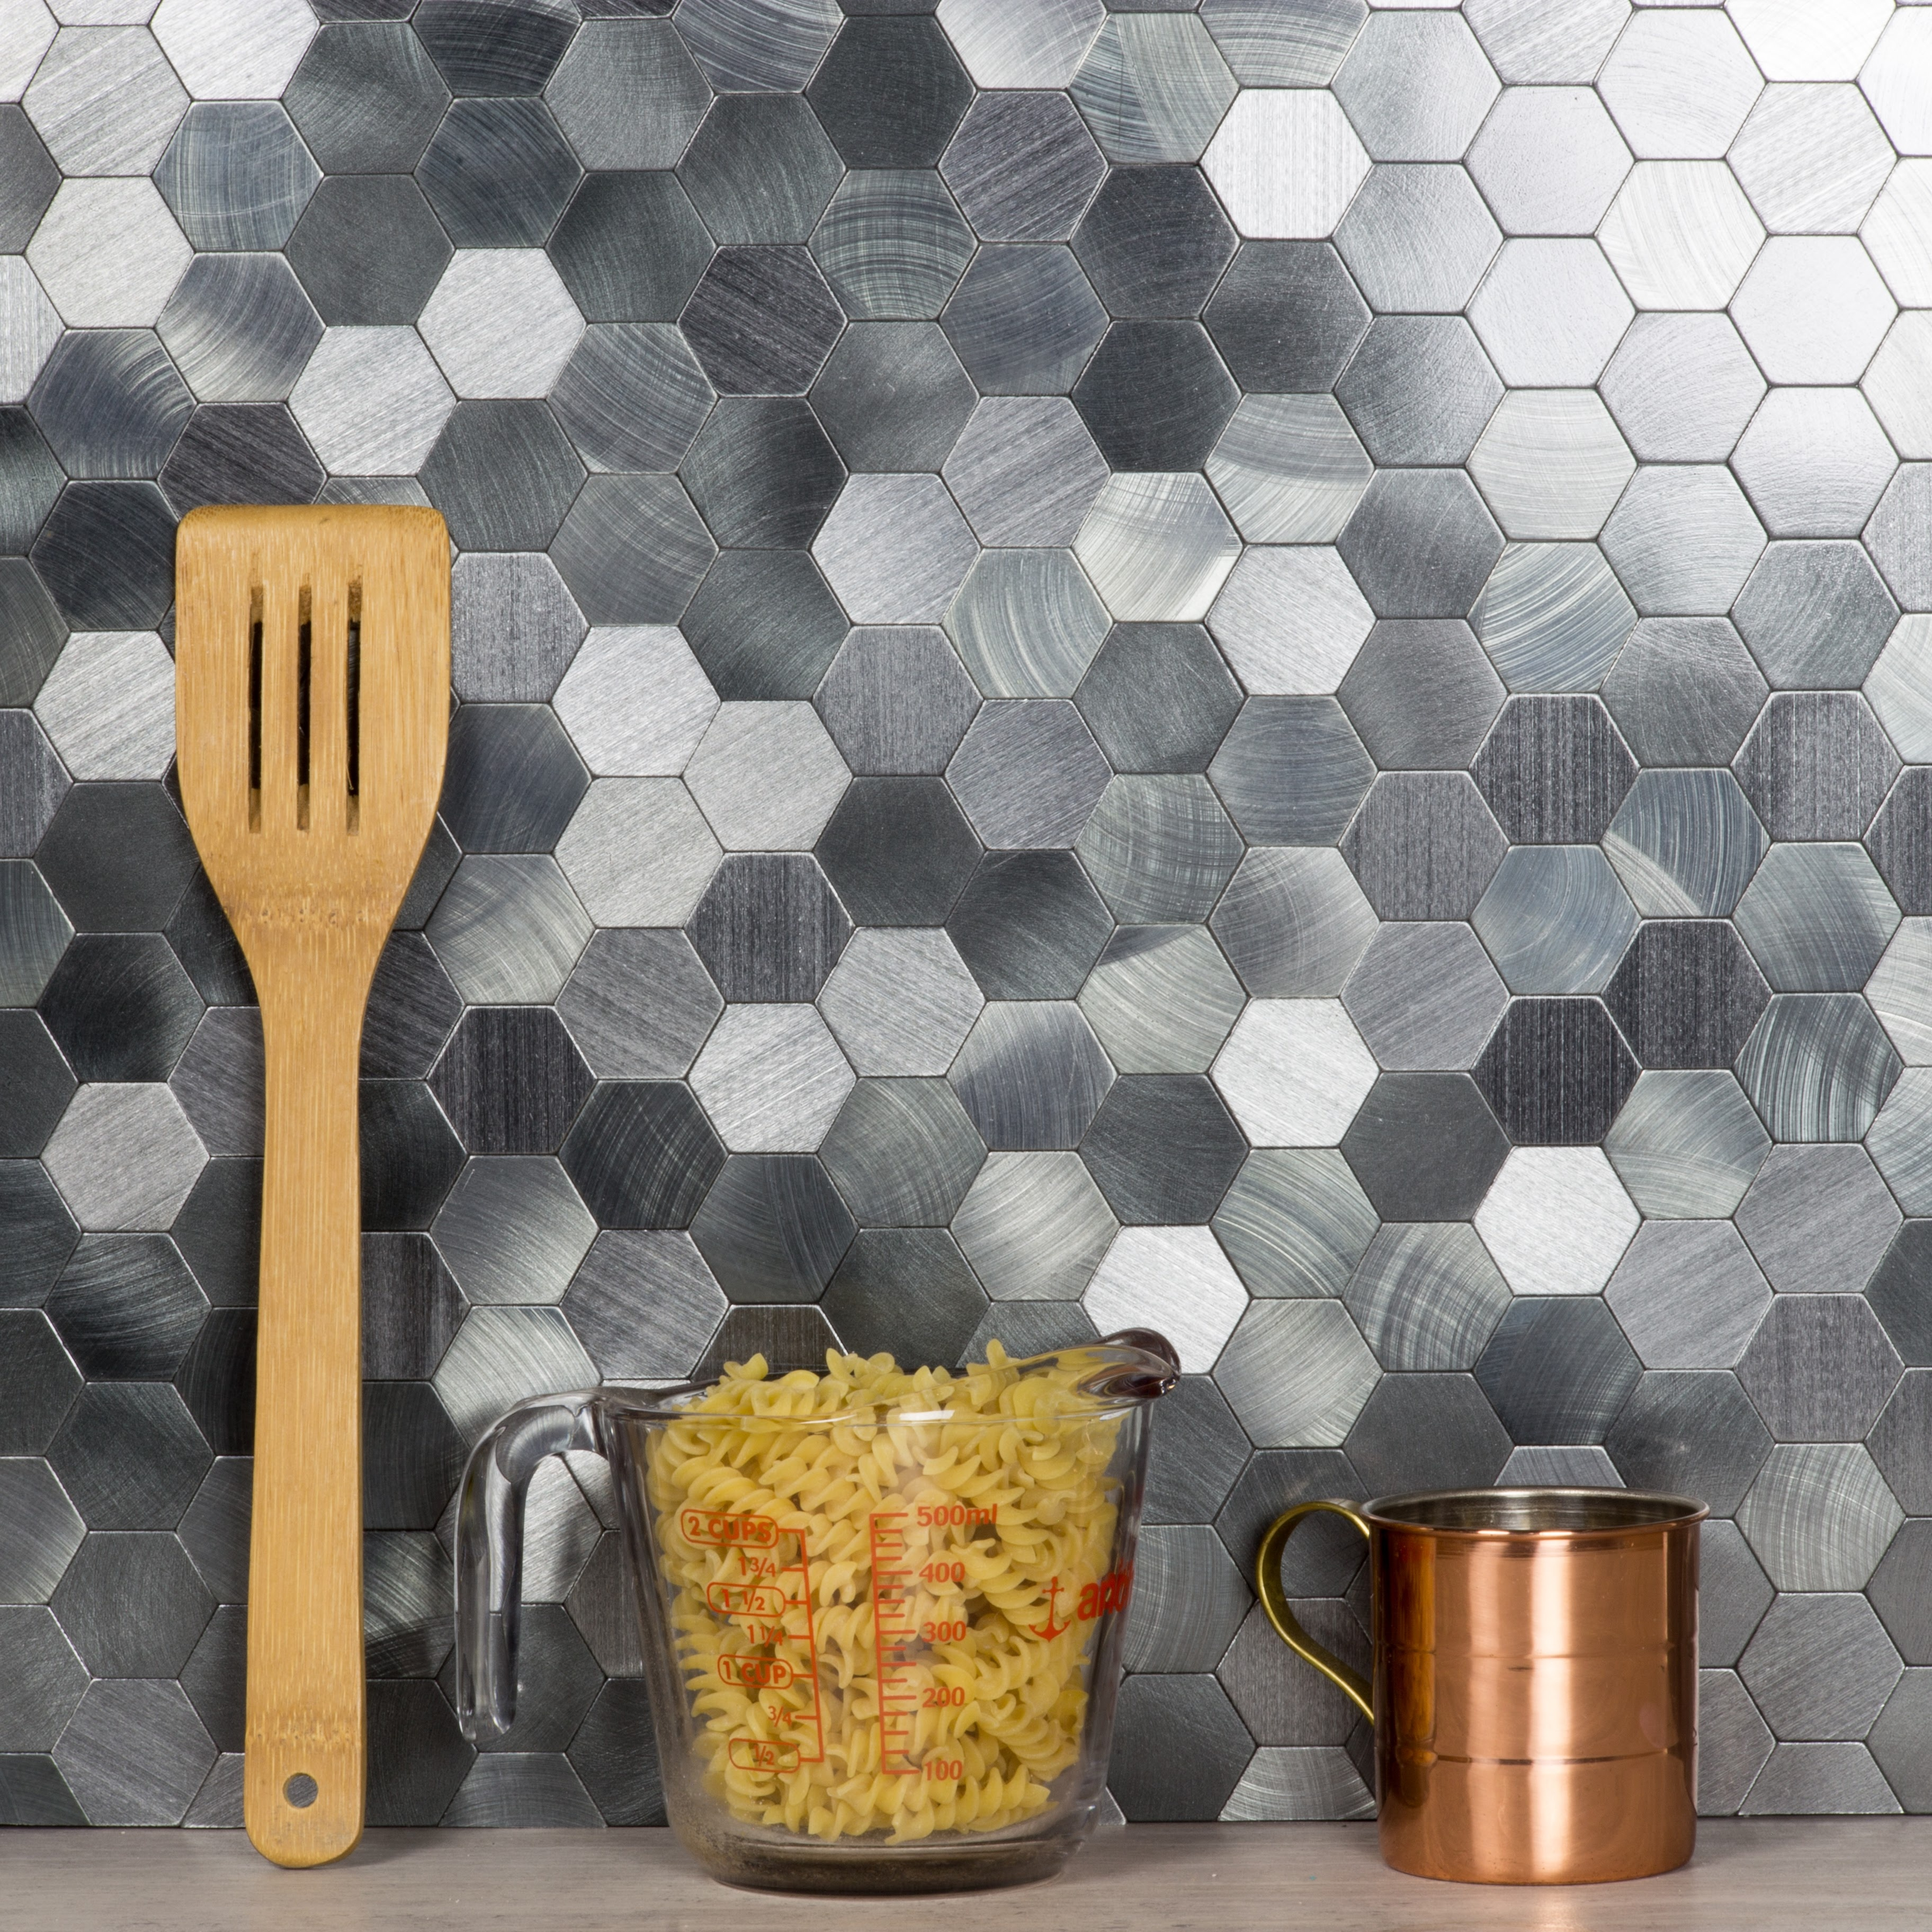 "Enchanted Metals Wall Backsplash Hexagon 12"" x 12"" Peel and Stick Metal Mosaic Tile in Silver"